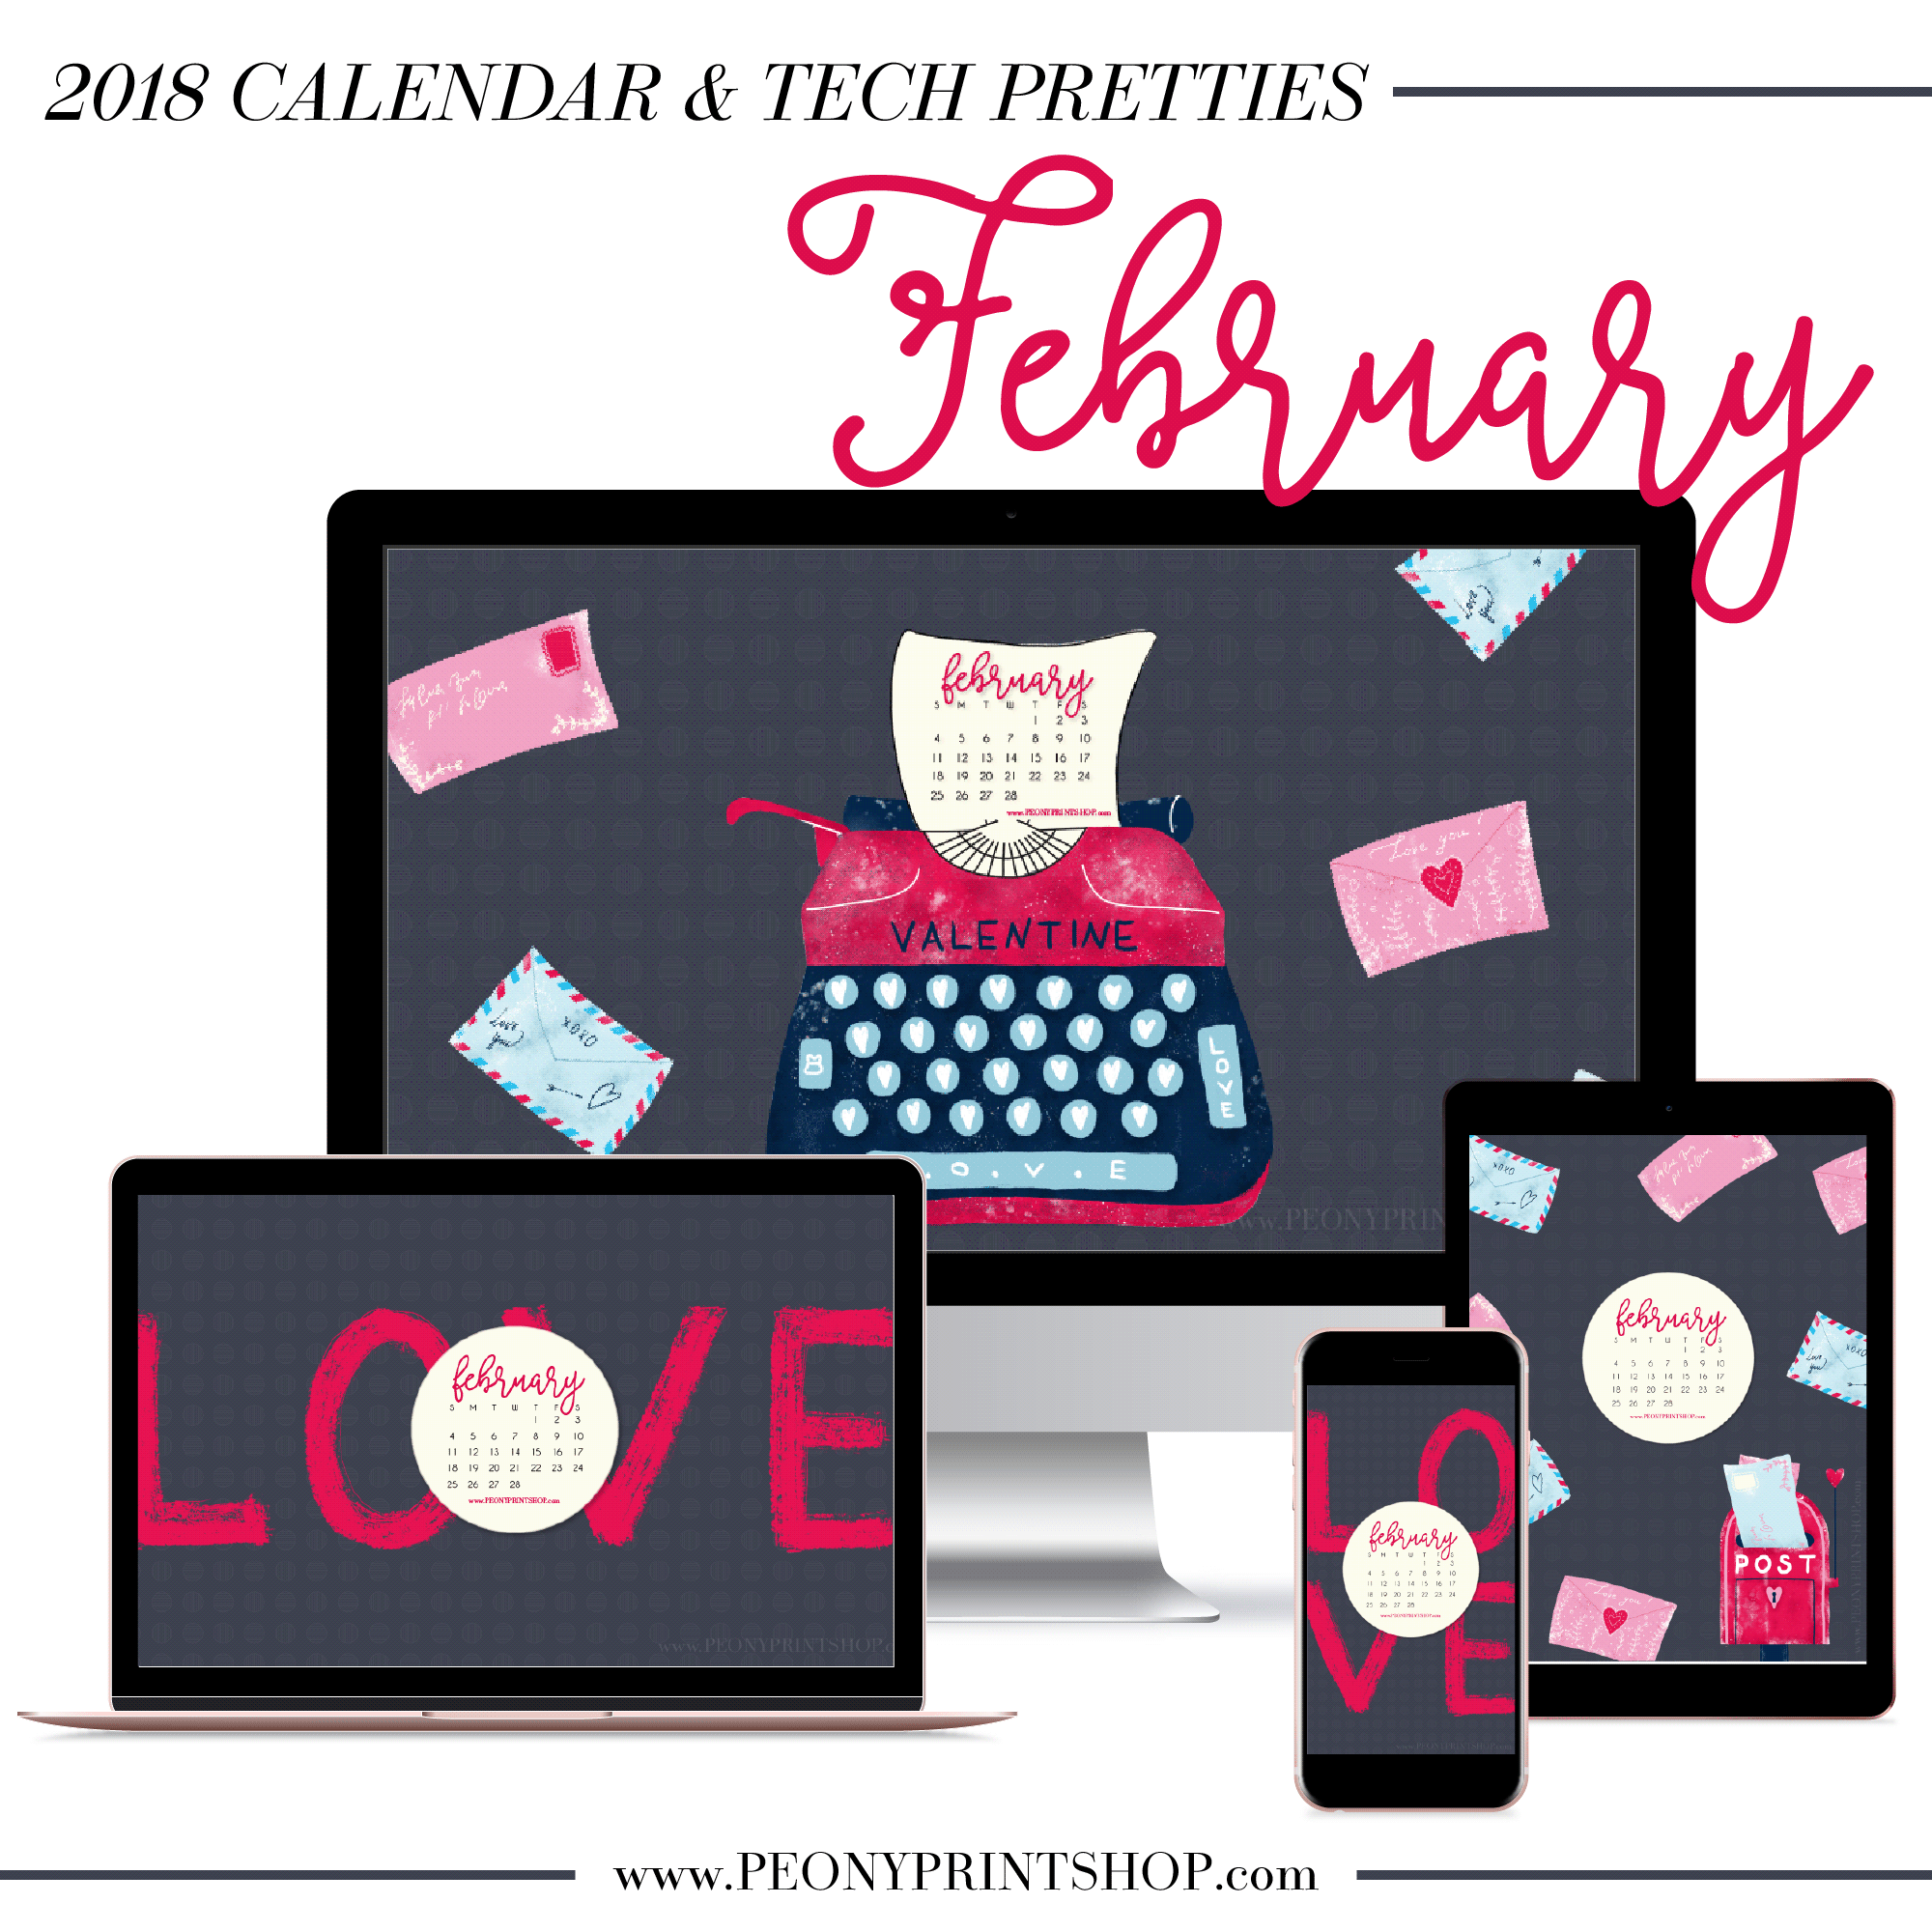 2018 February Tech Pretties on PeonyPrintshop.com - Custom Designs & Stationery for Engaged Couples & Small Businesses